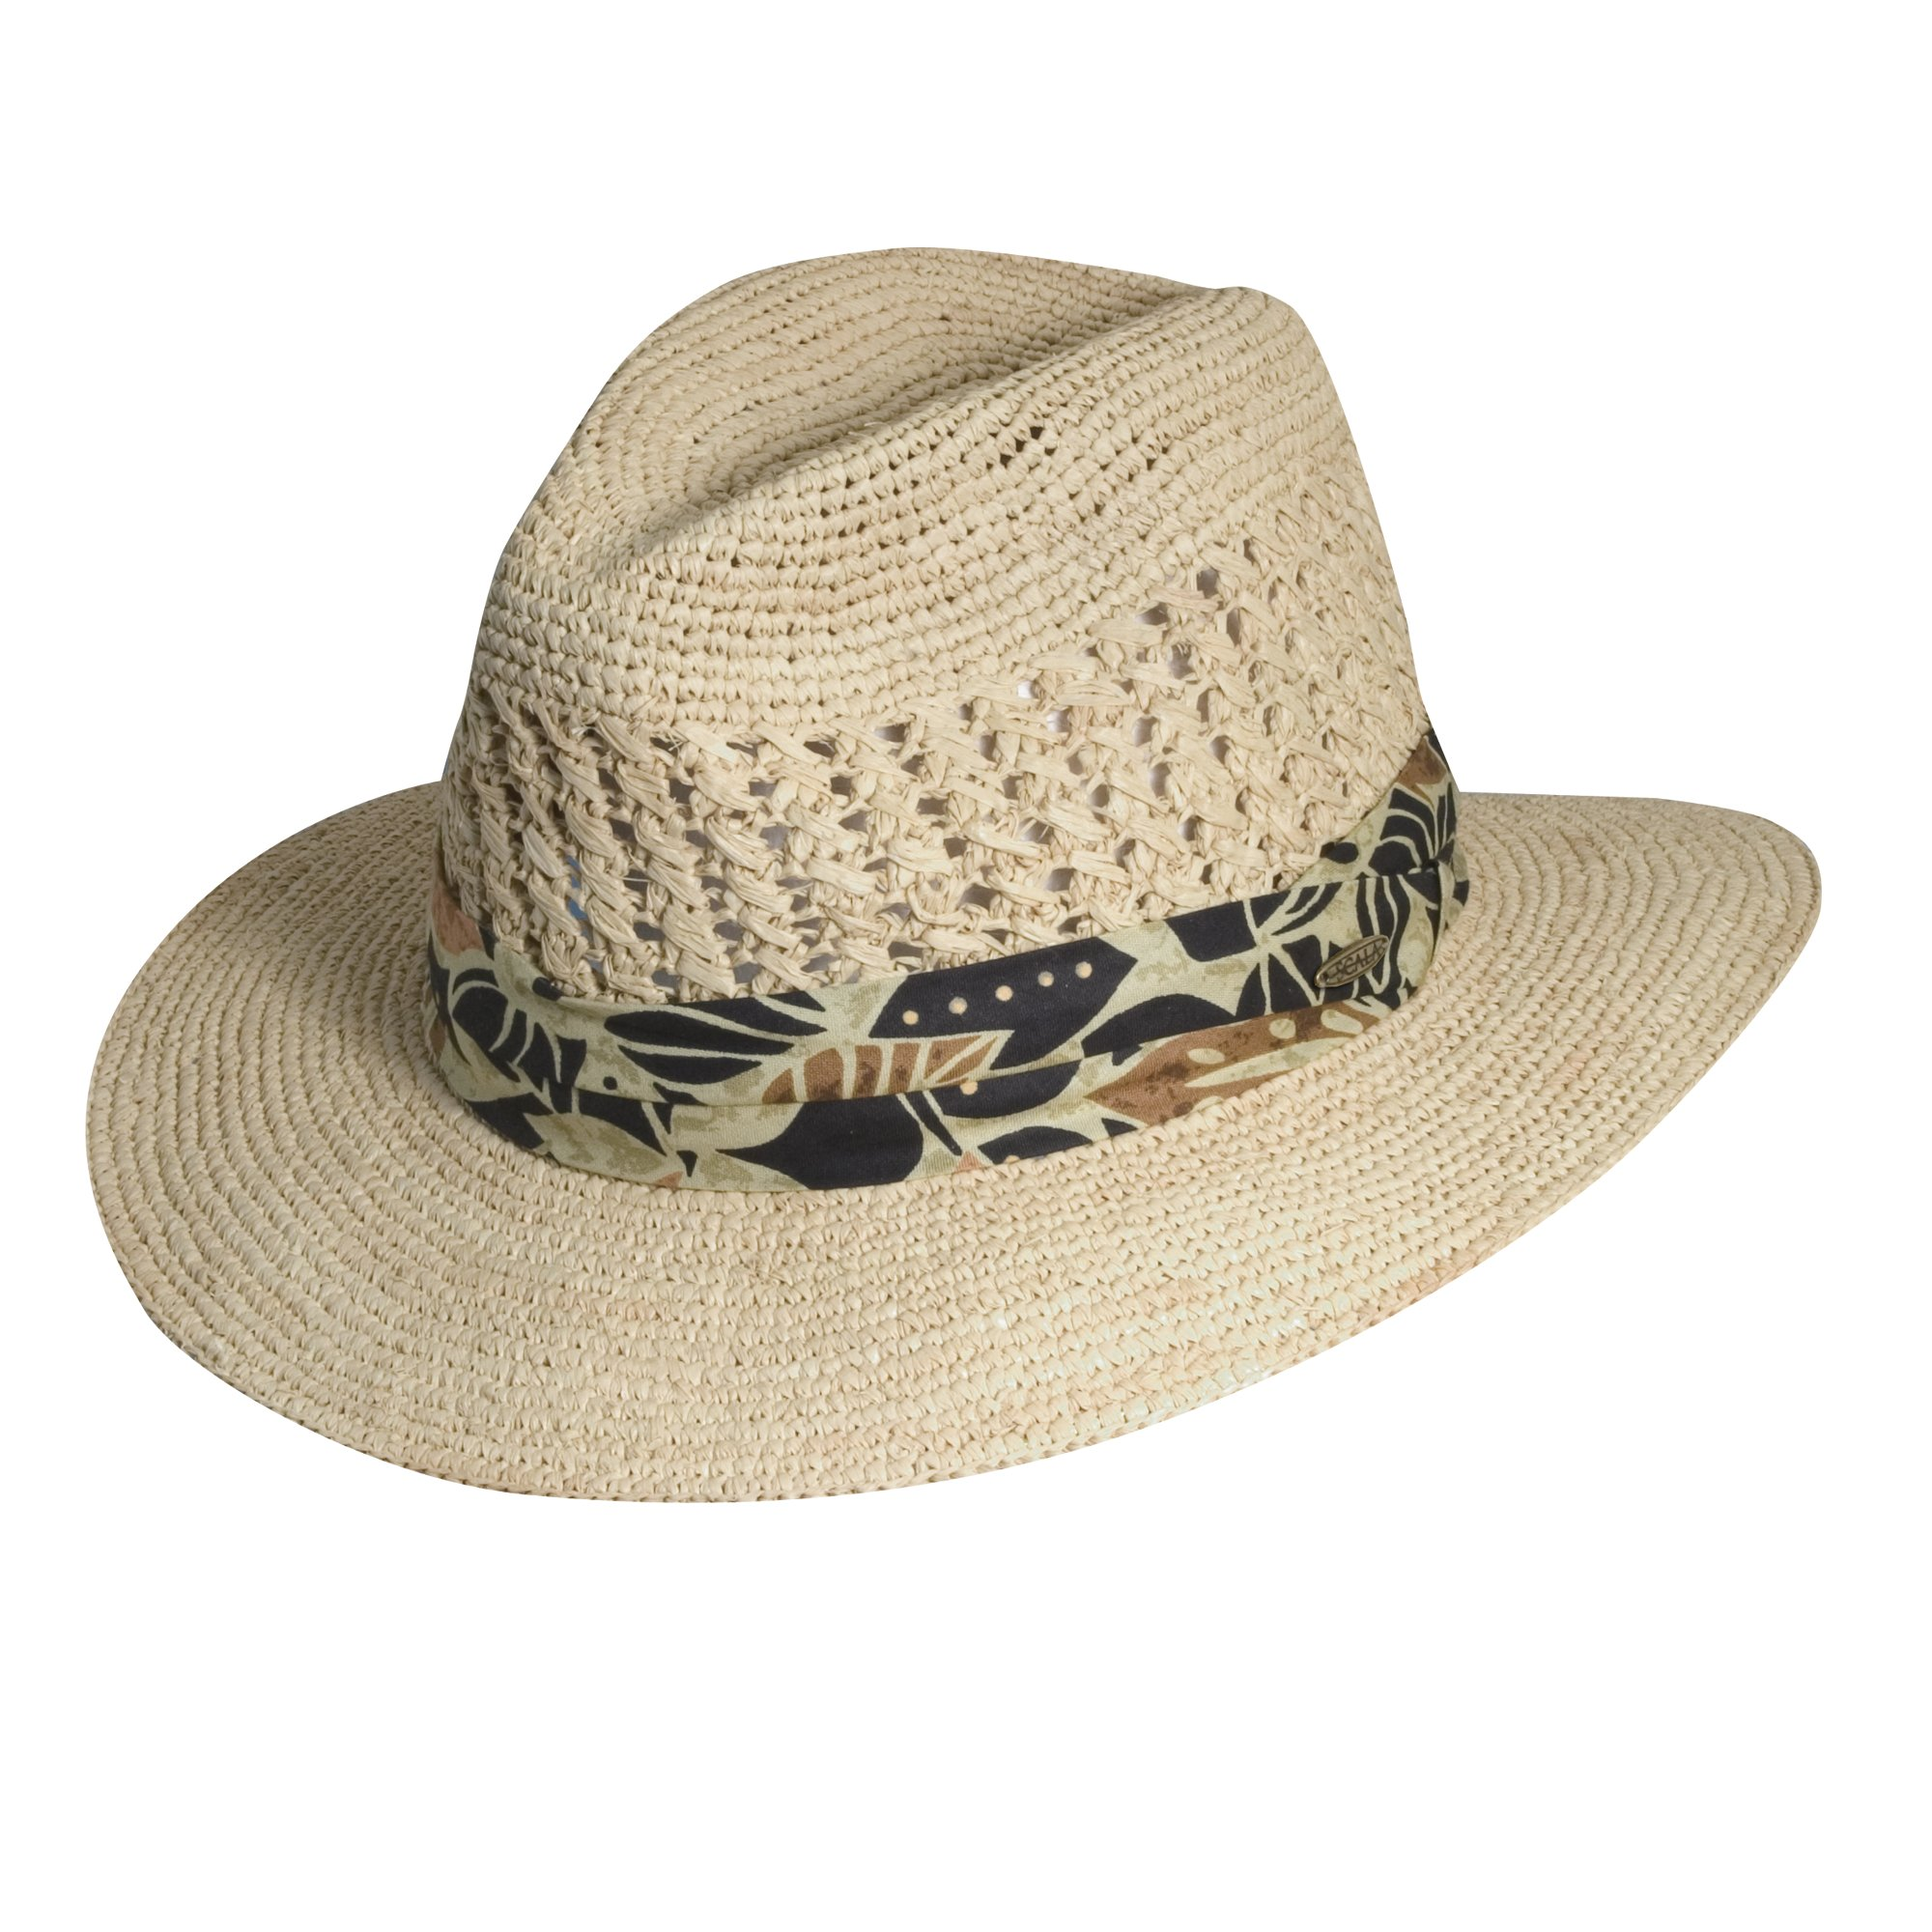 Scala Fine Organic Crocheted Raffia Safari with Print Sun Hat (L/XL, Black)